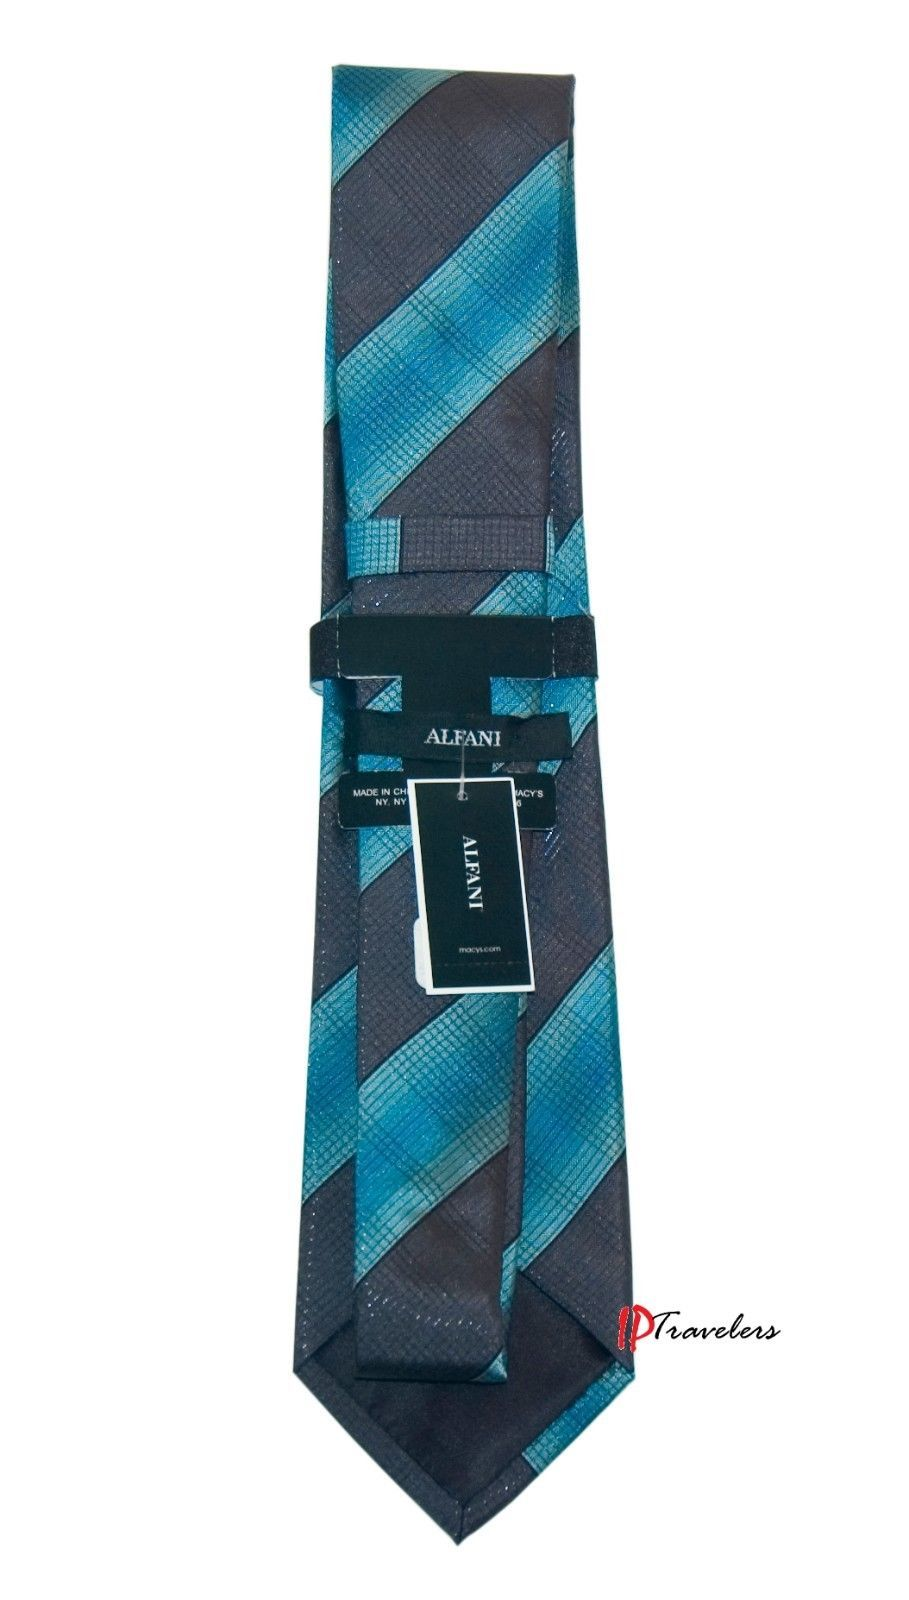 Alfani Men's Neck Tie Aqua Blue with Black Stripes Silk Classic Length $49.50 image 2